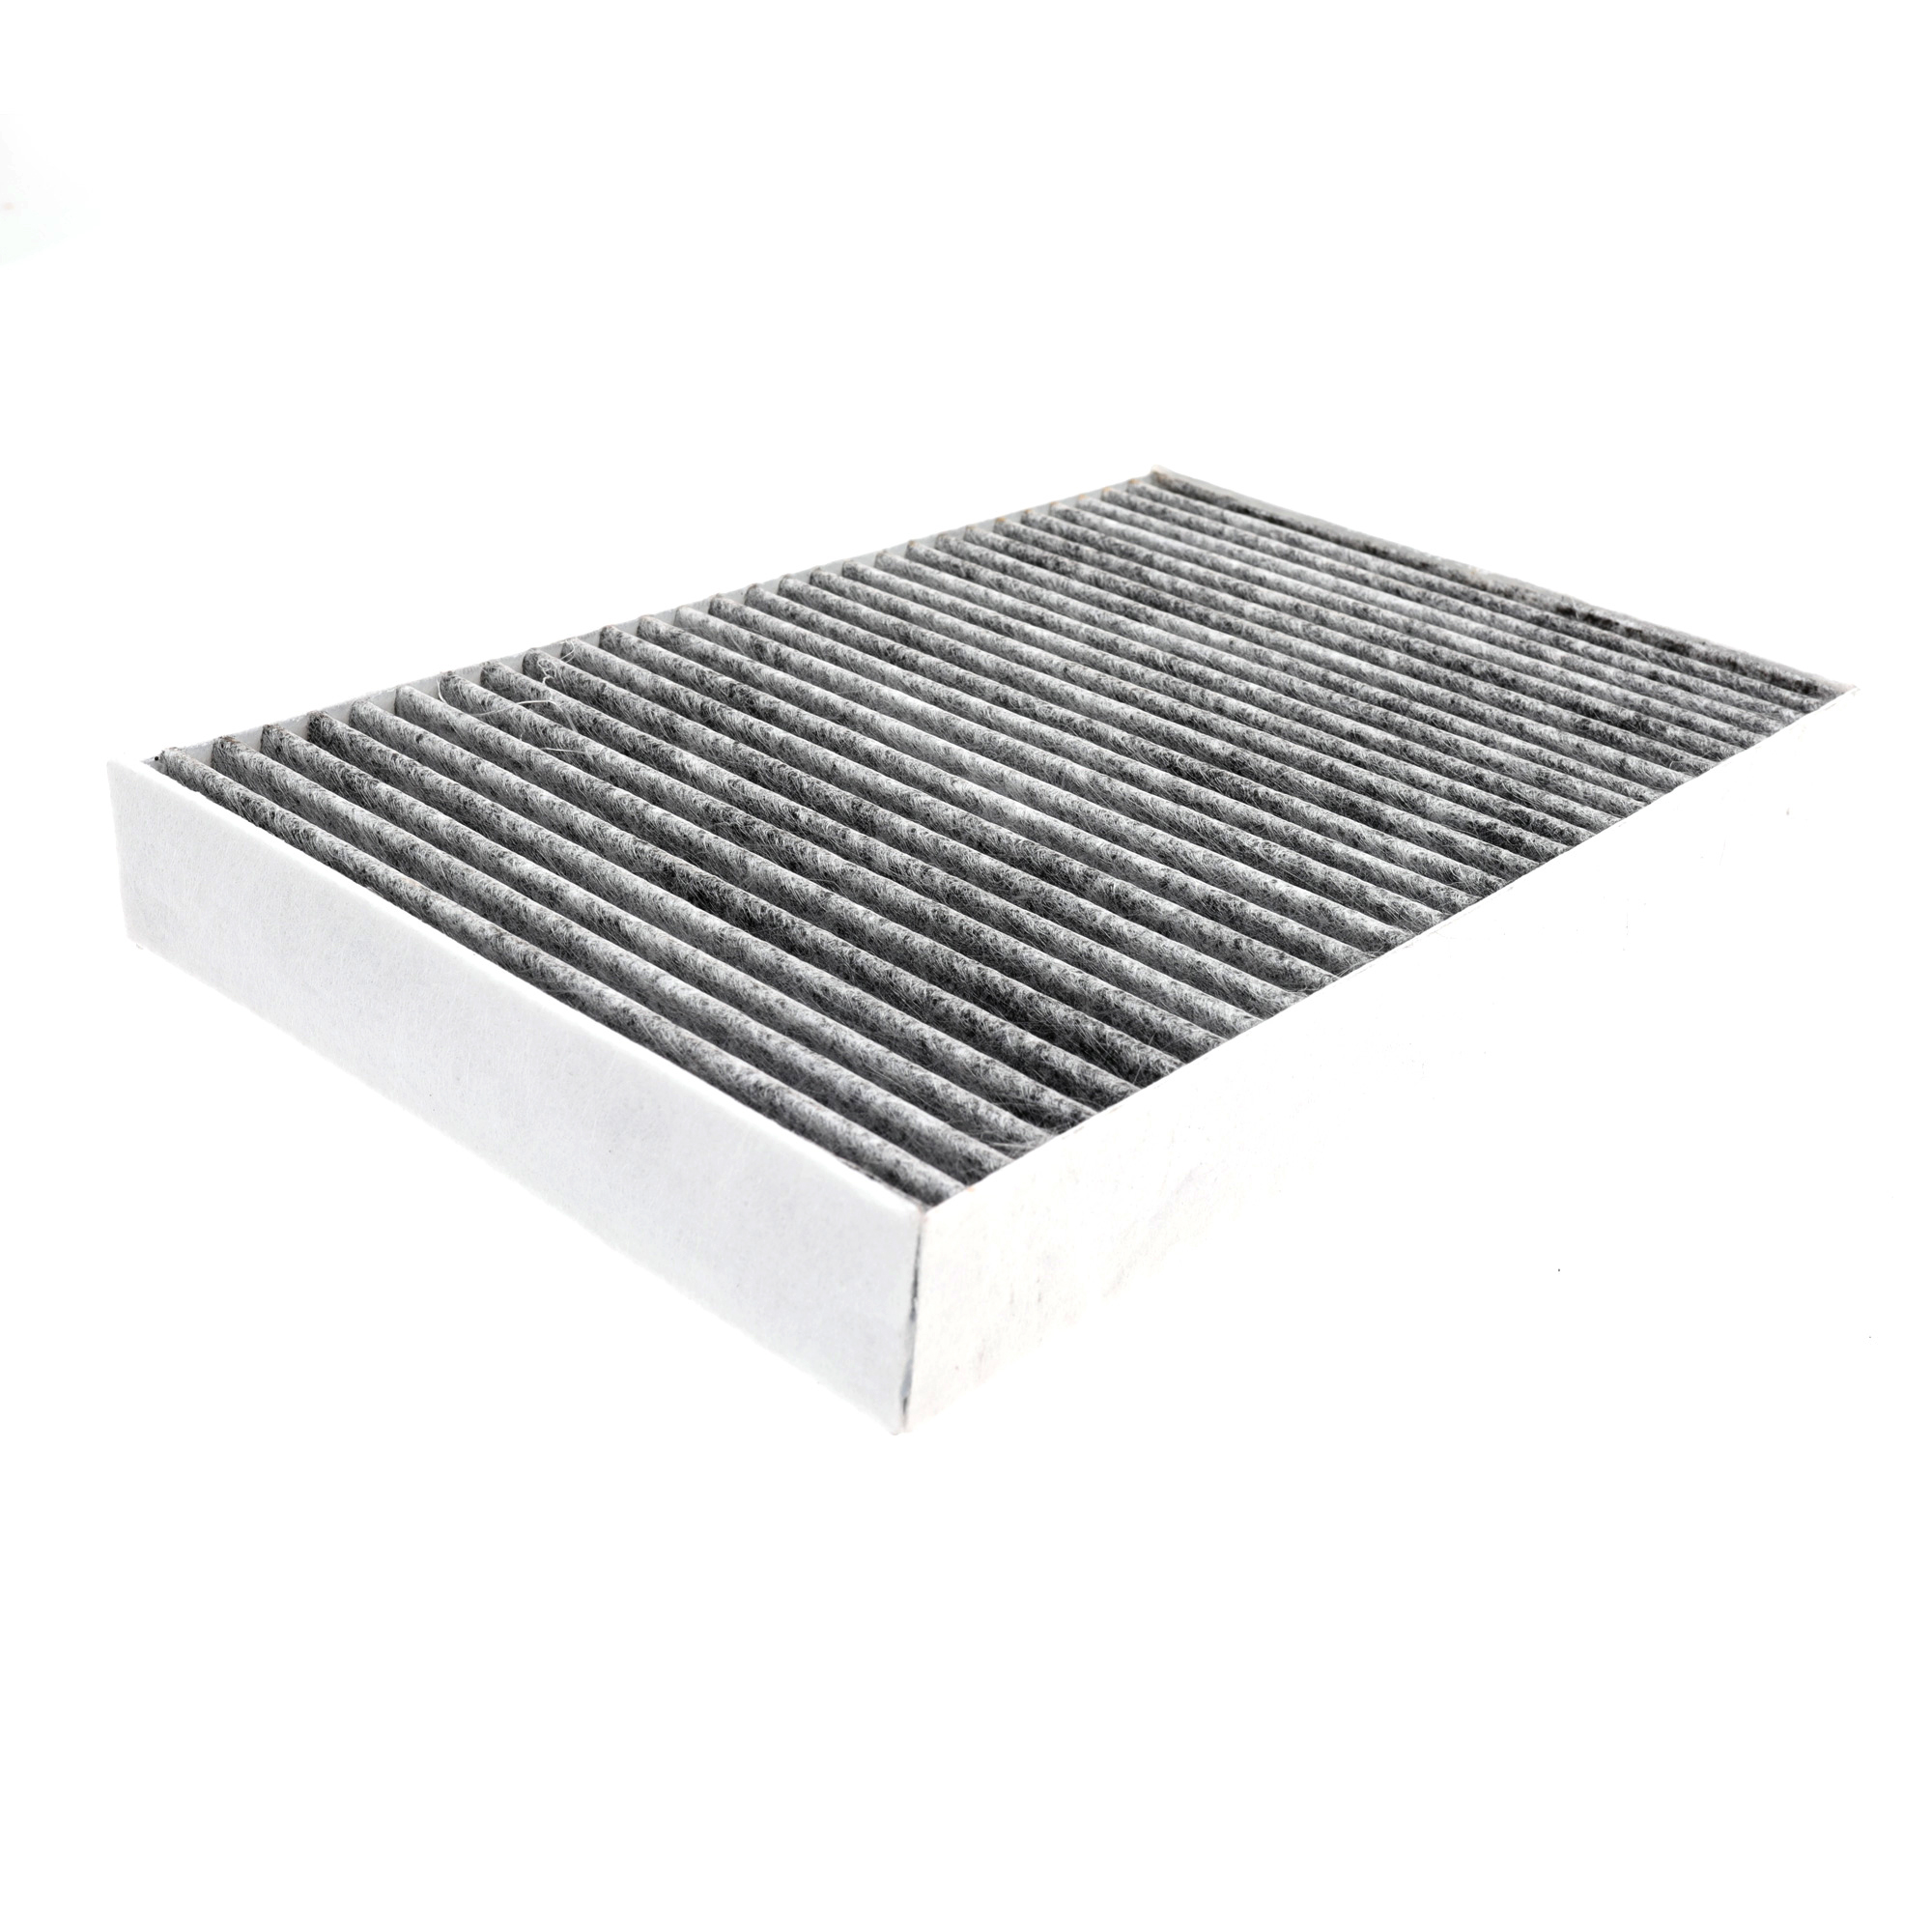 Image 2 - DEF Cabin Air Filter for Tesla Model S, Includes Activated Carbon and Soda, Guarantee Breeze Fresh Air, 2012 2015Cabin Filter   -